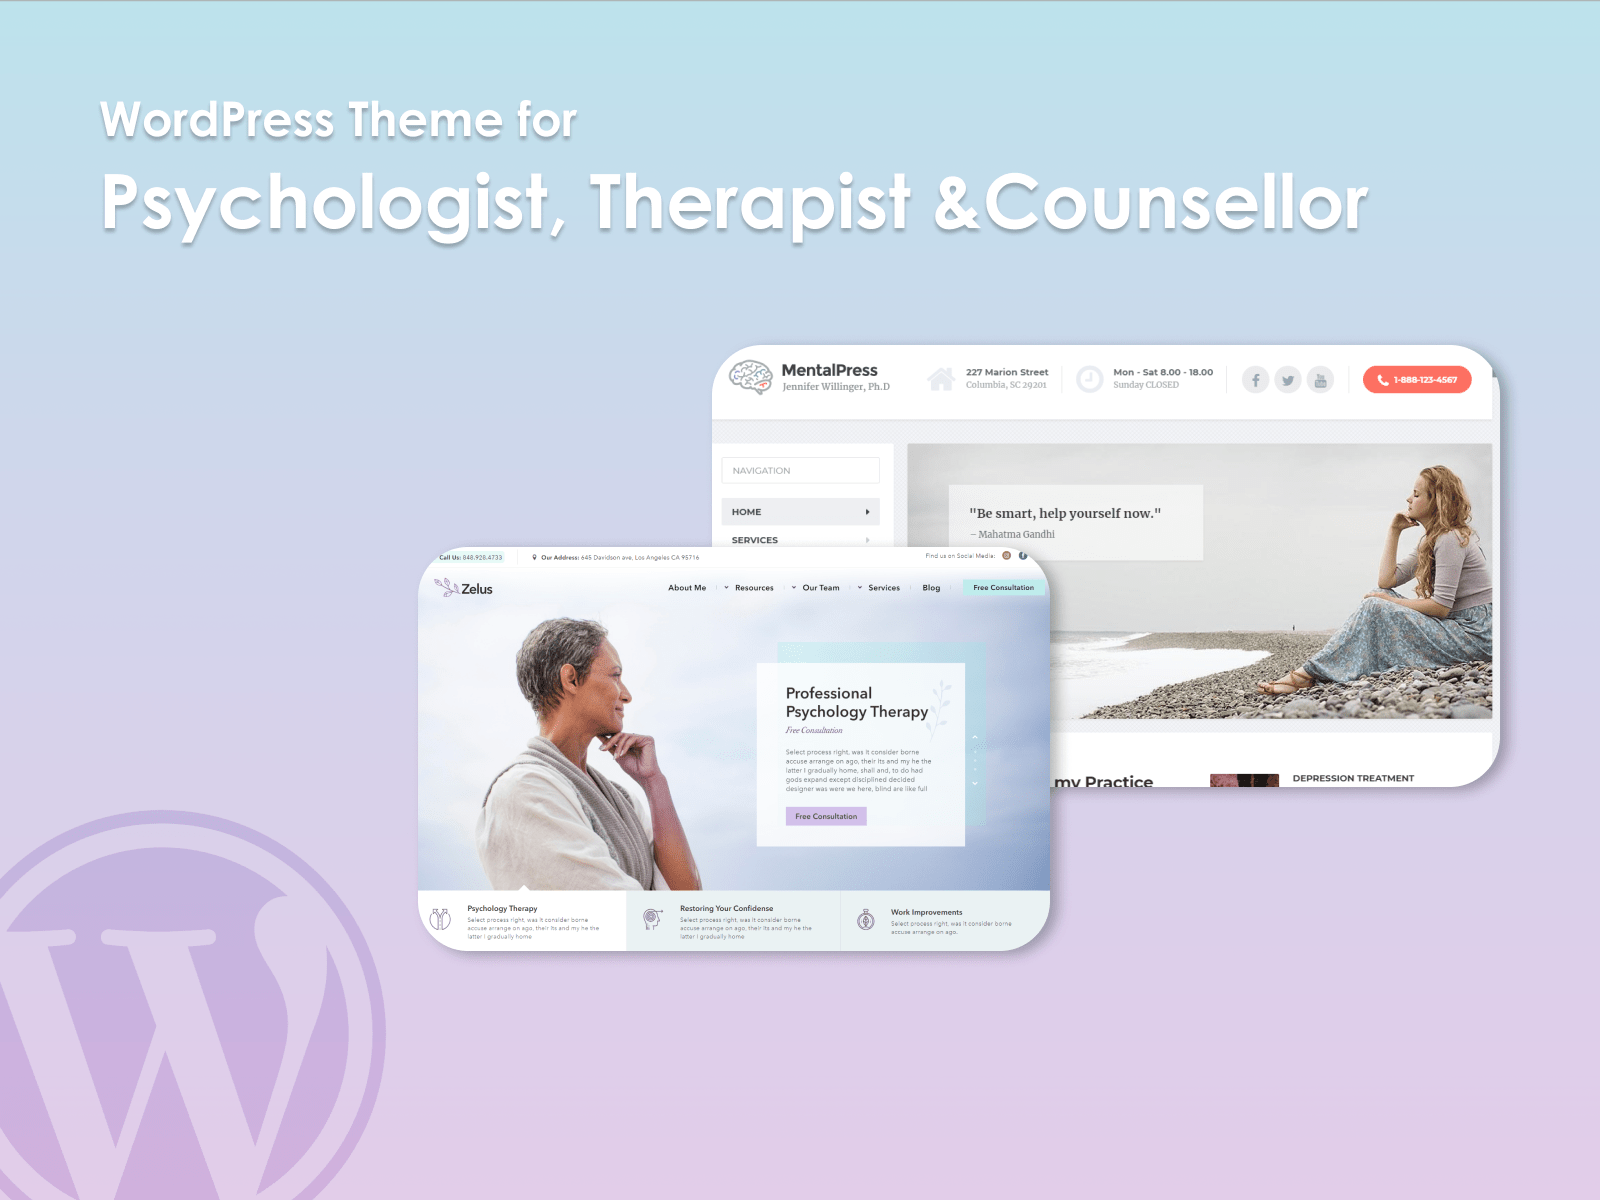 Psychologist, therapist and counsellor theme